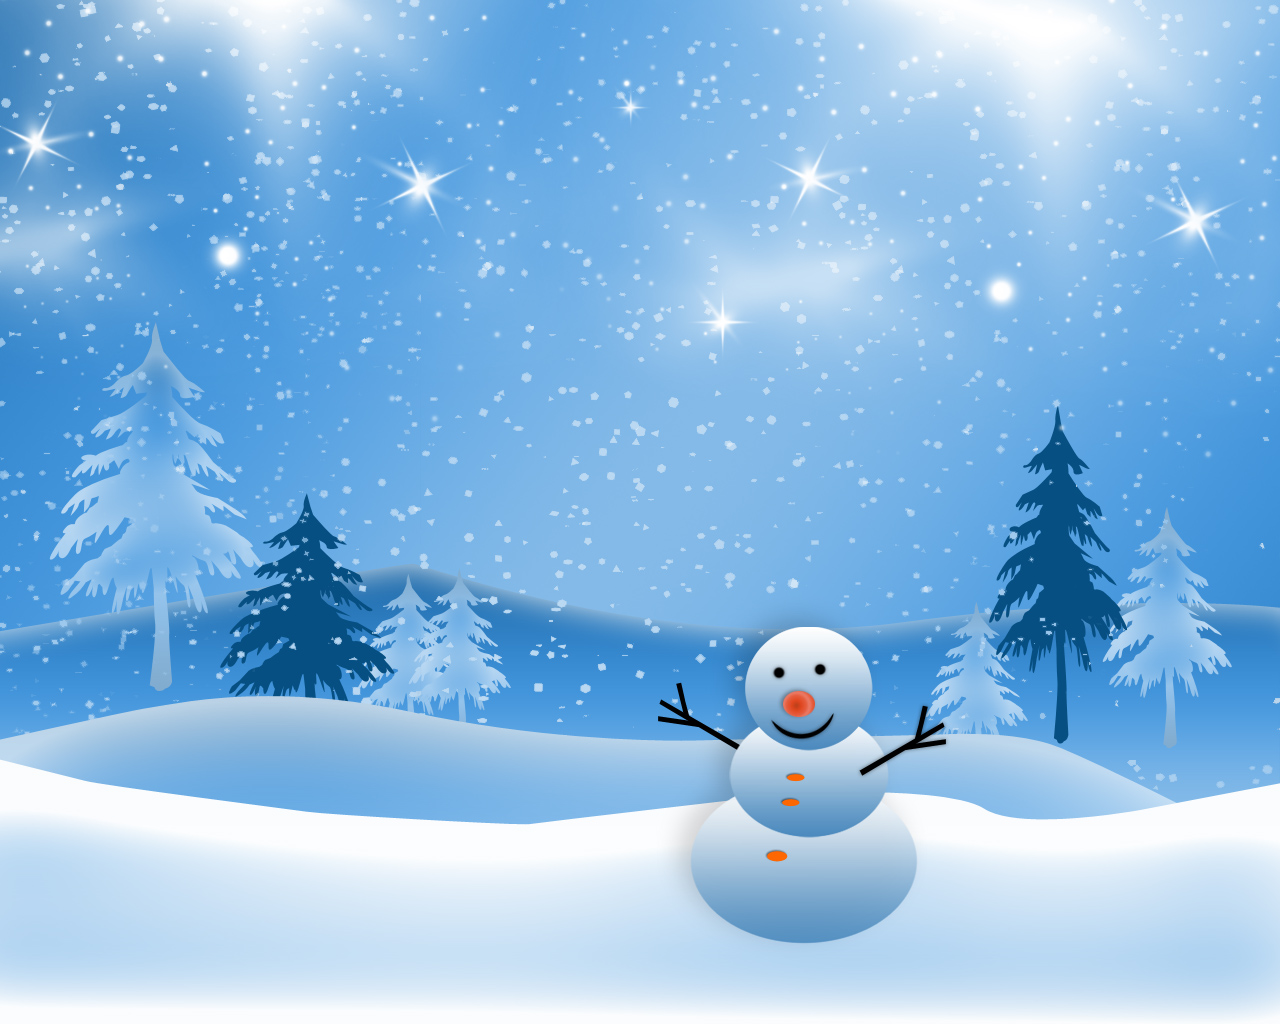 cute winter desktop wallpaper   wwwwallpapers in hdcom 1280x1024